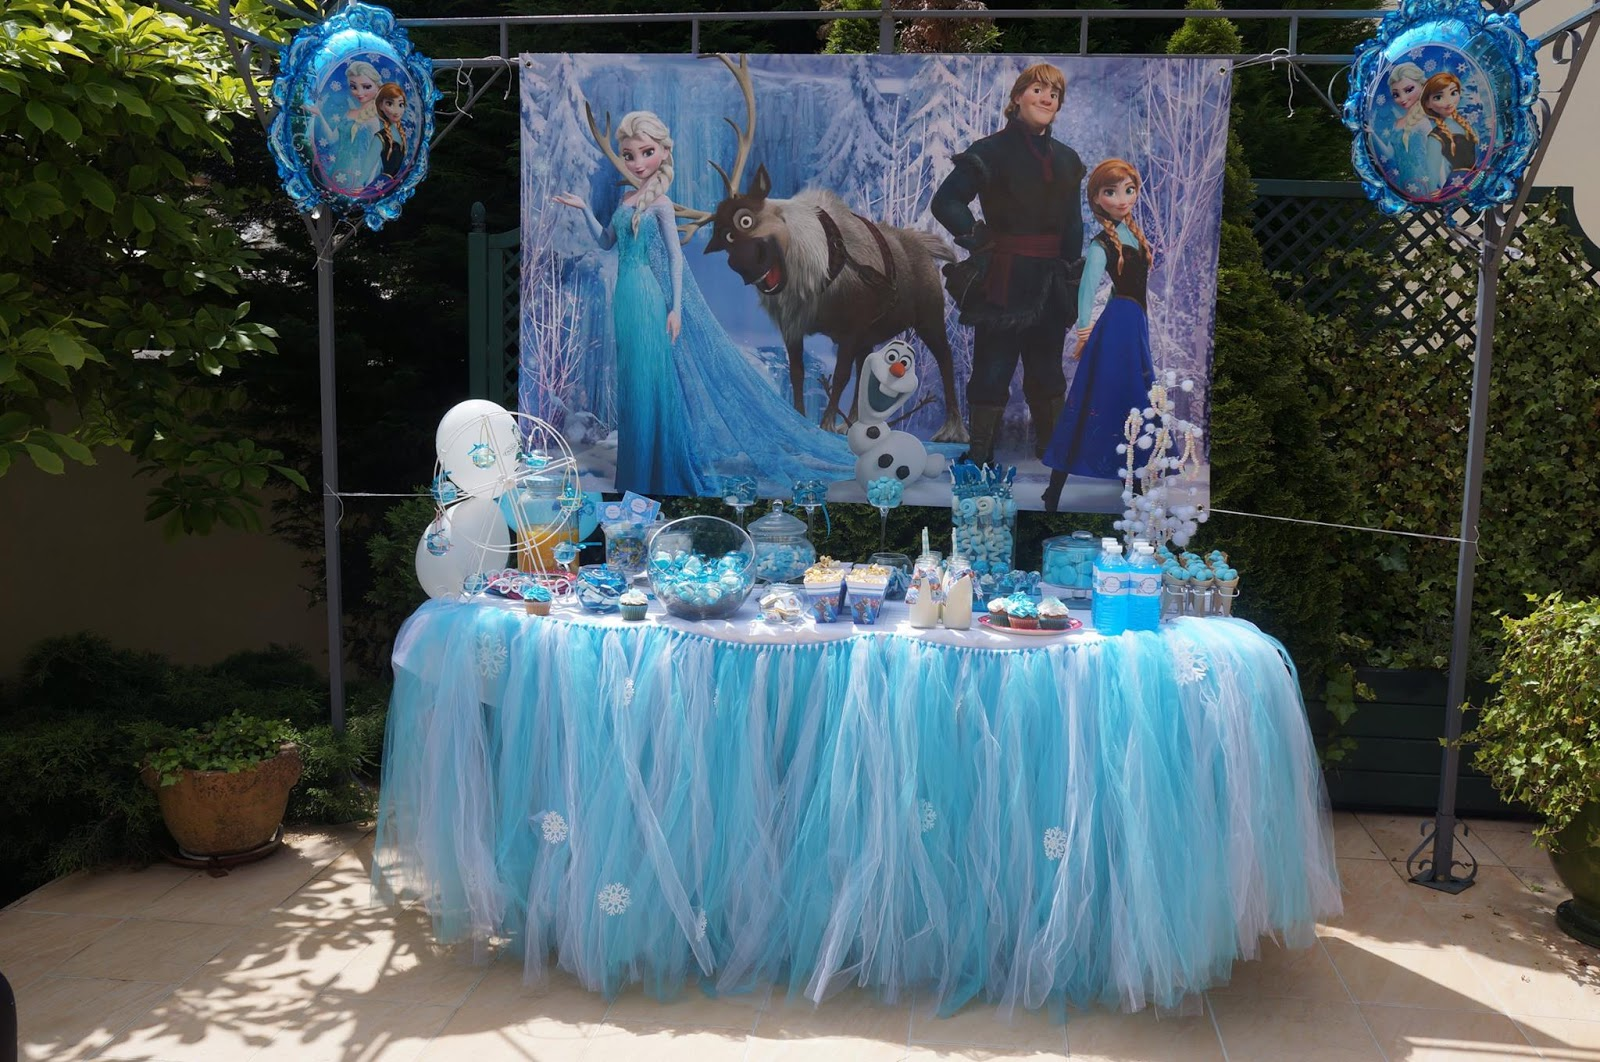 table d'anniversaire decoree sur le theme de la reine des neiges